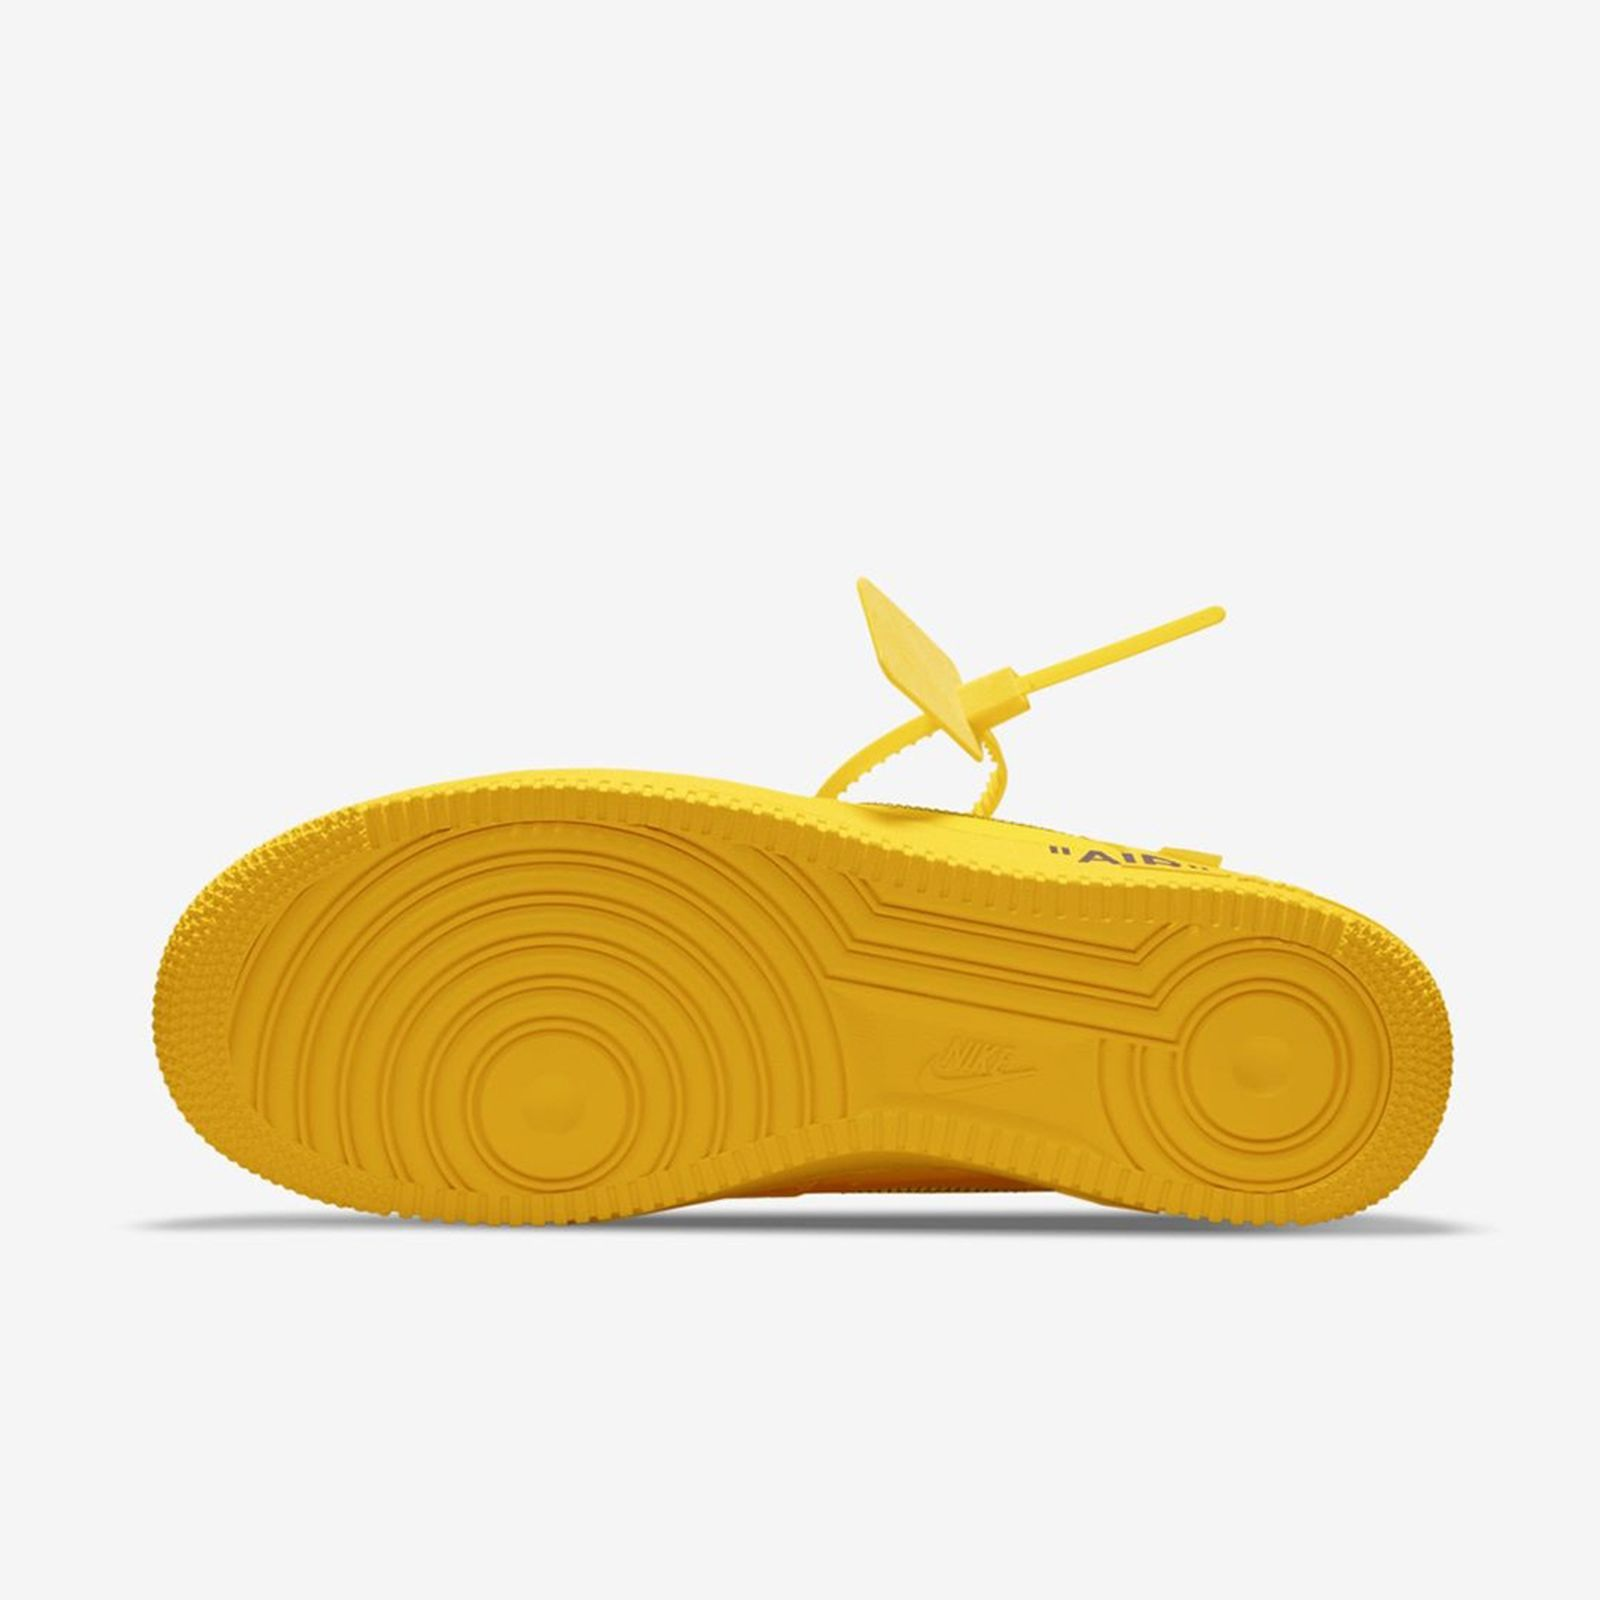 off-white-nike-air-force-1-canary-yellow-release-date-price-09